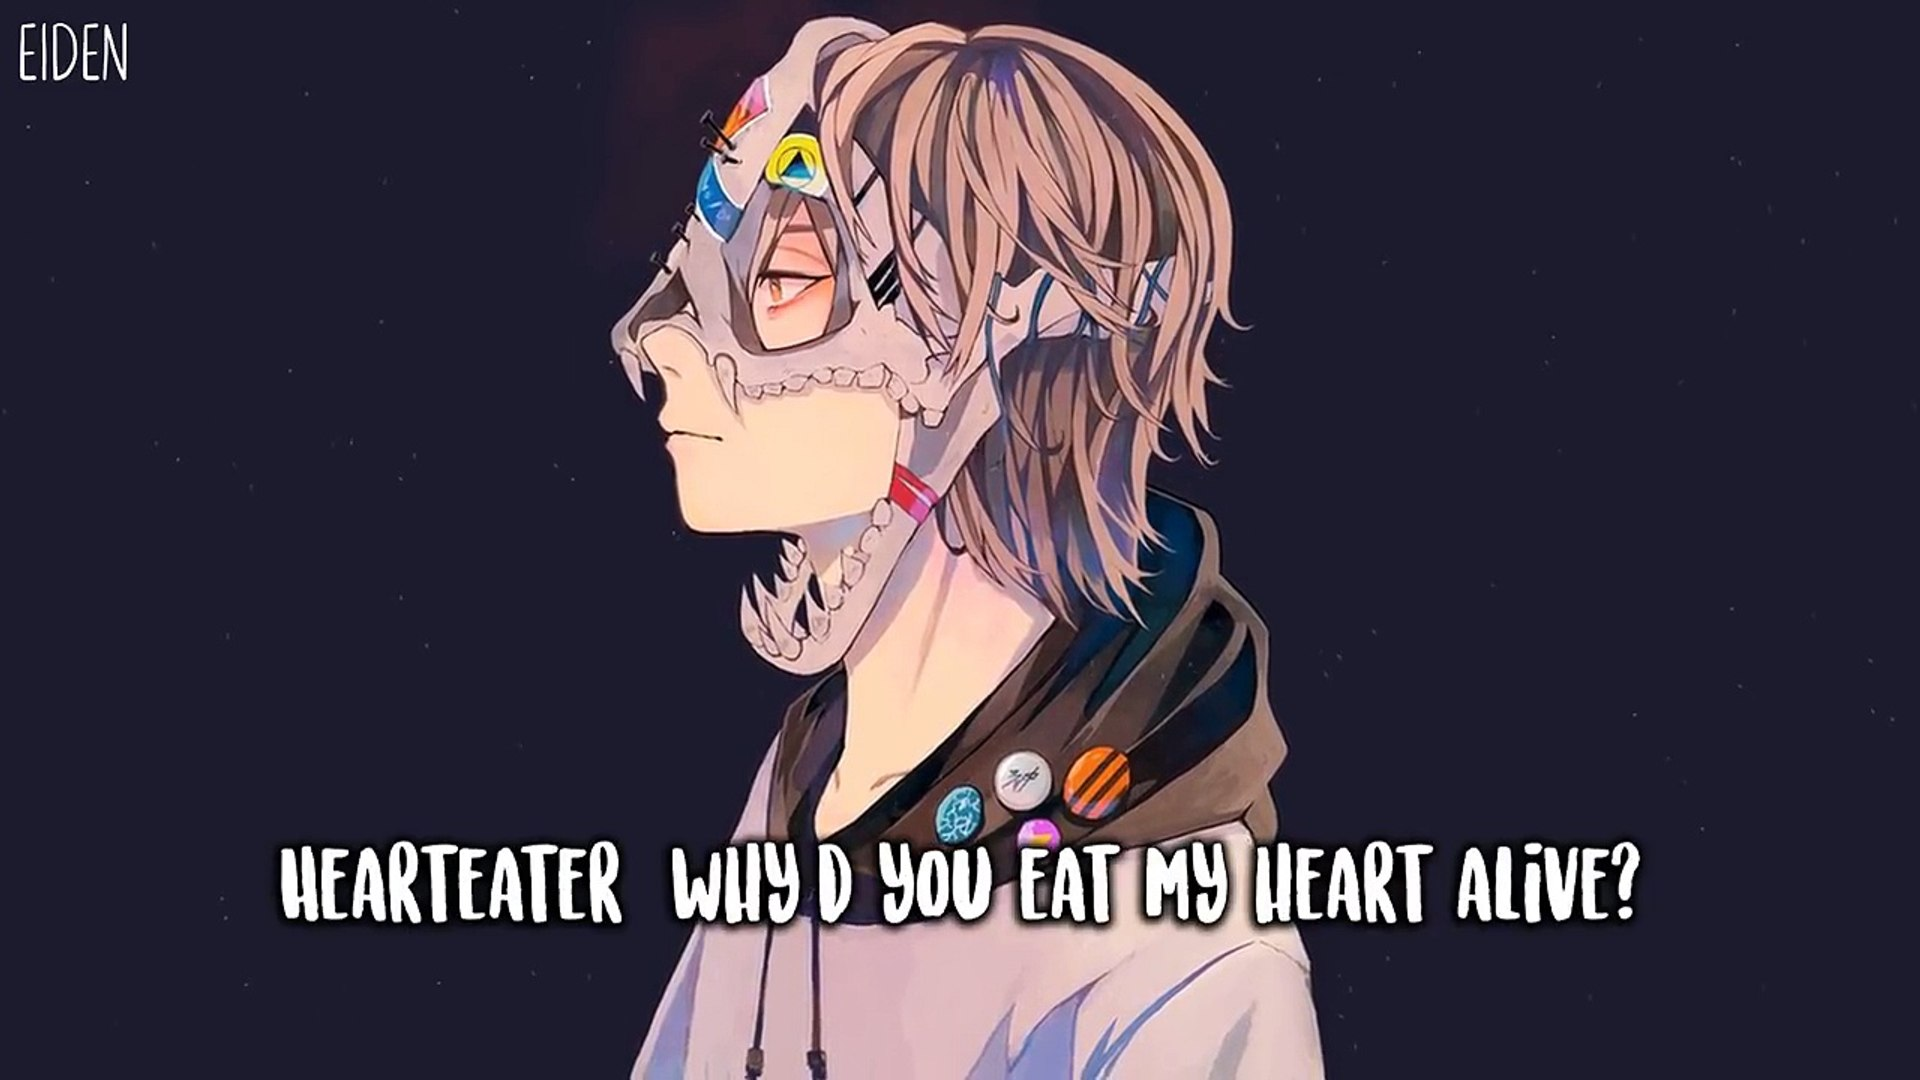 「Nightcore」→ Hearteater (XXXTENTACION/COVER) - Lyrics